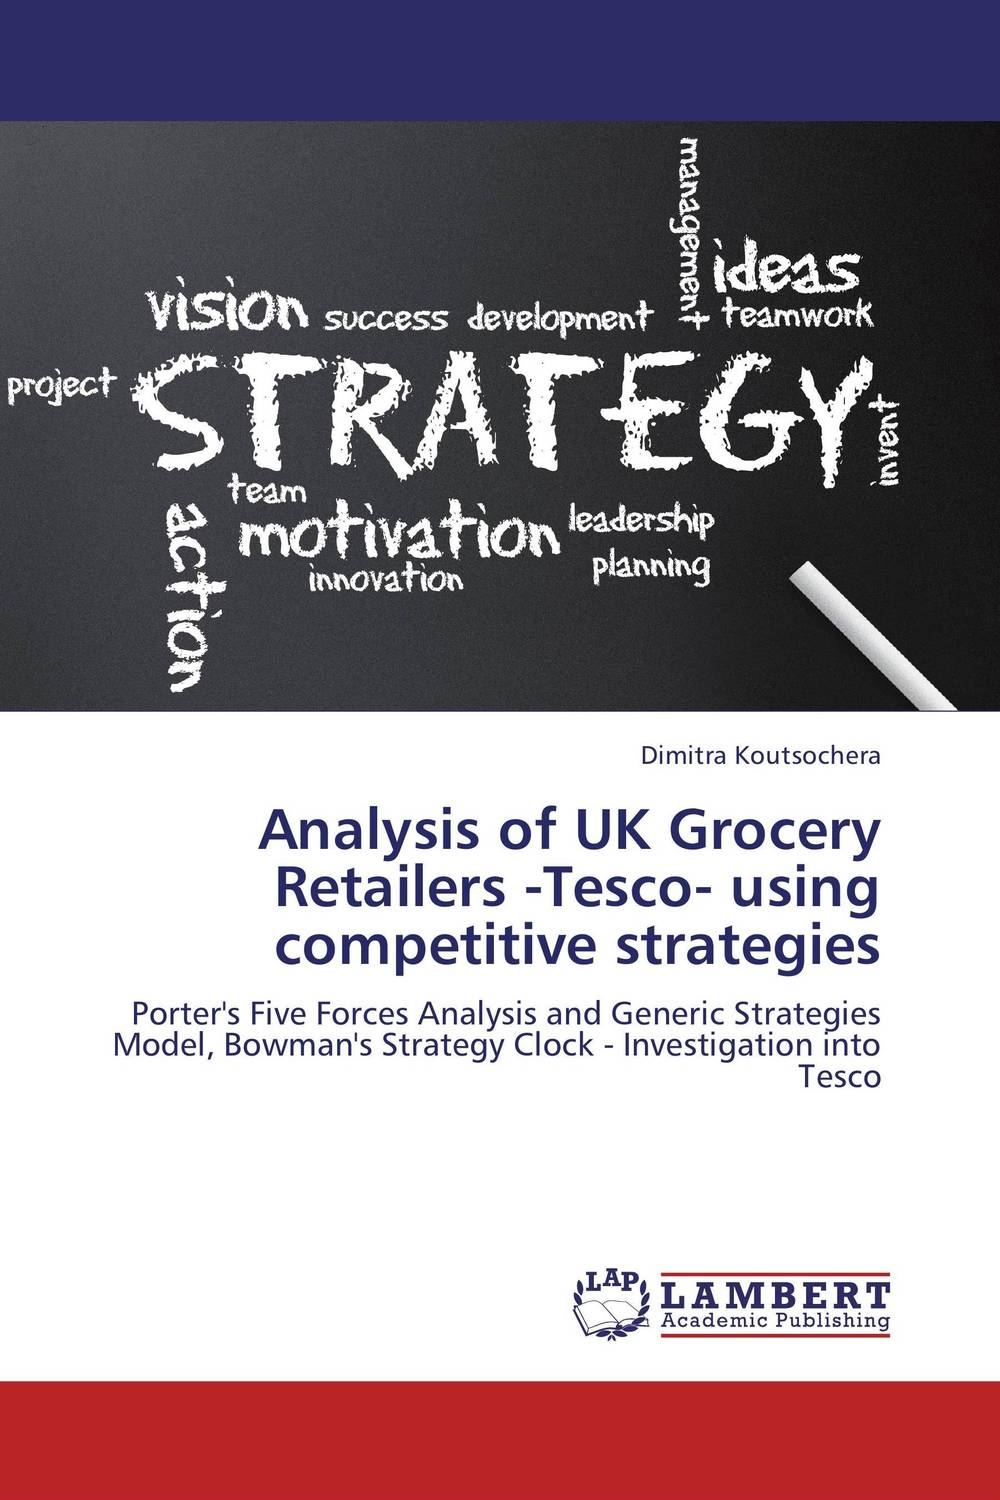 Analysis of UK Grocery Retailers -Tesco- using competitive strategies dilip kumar dam break analysis using hec ras a case study